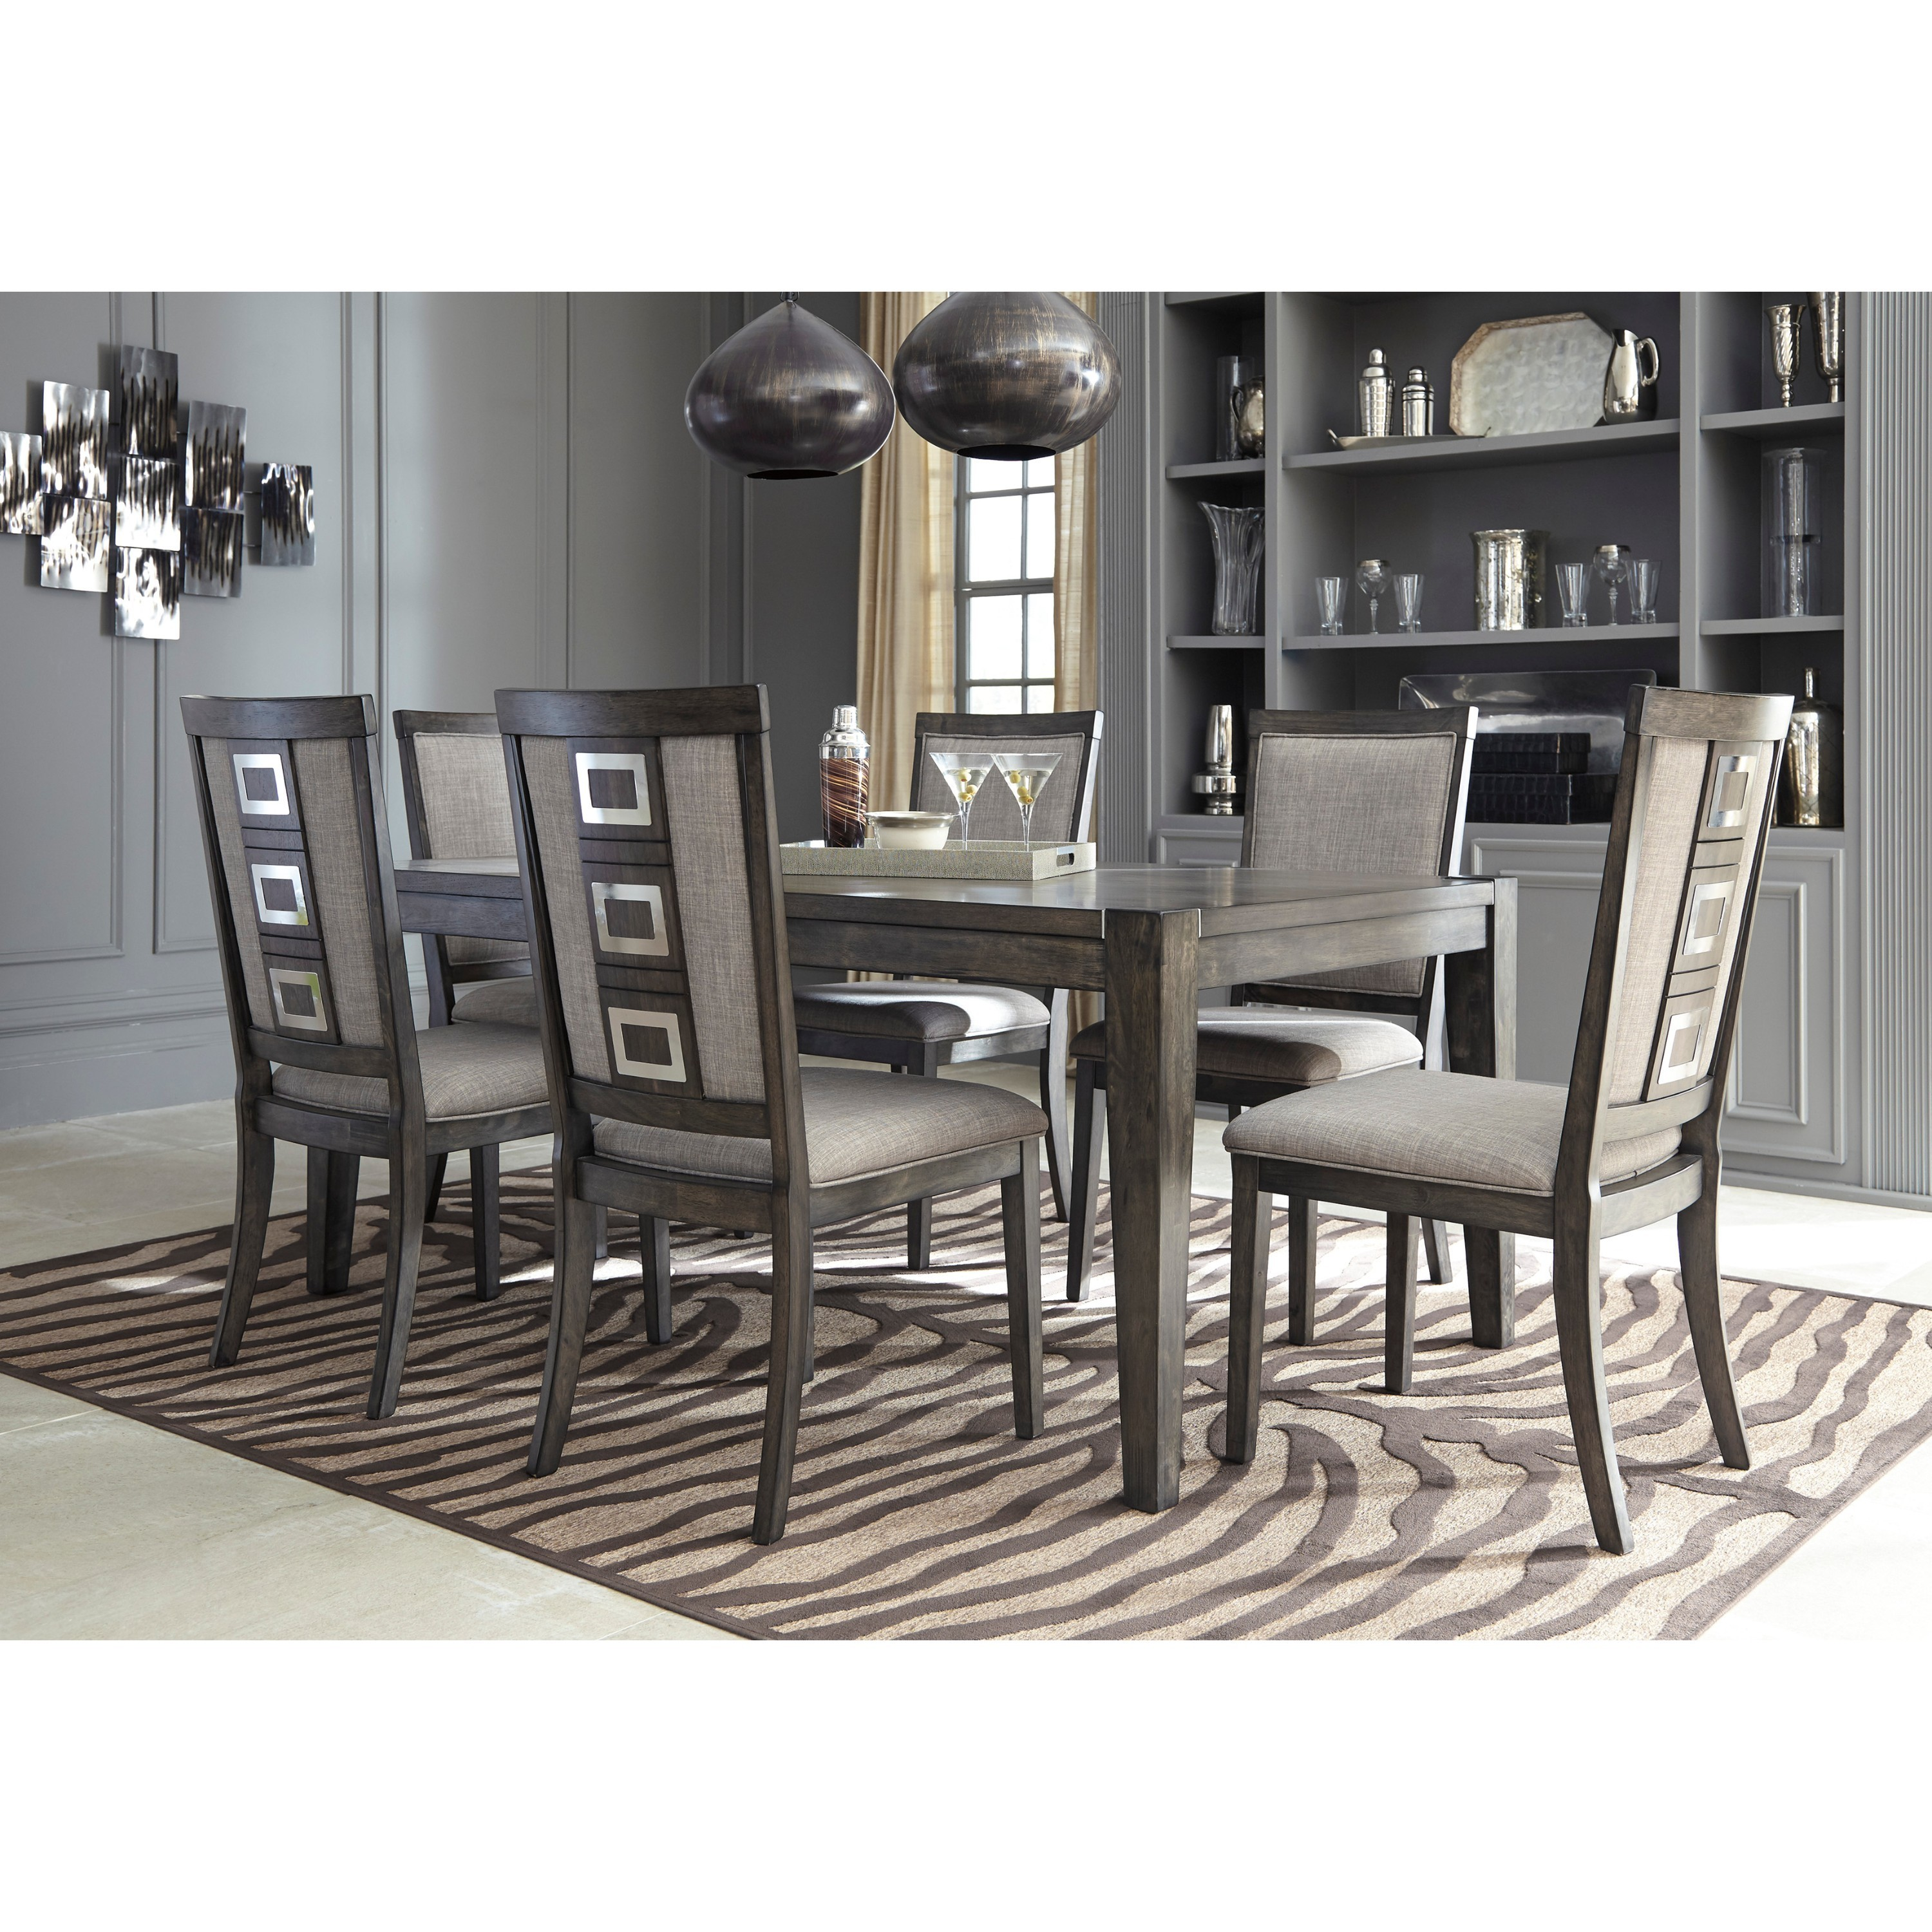 Signature Design By Ashley Chadoni Gray Dining Room Table With Chairs Set Overstock 13046762